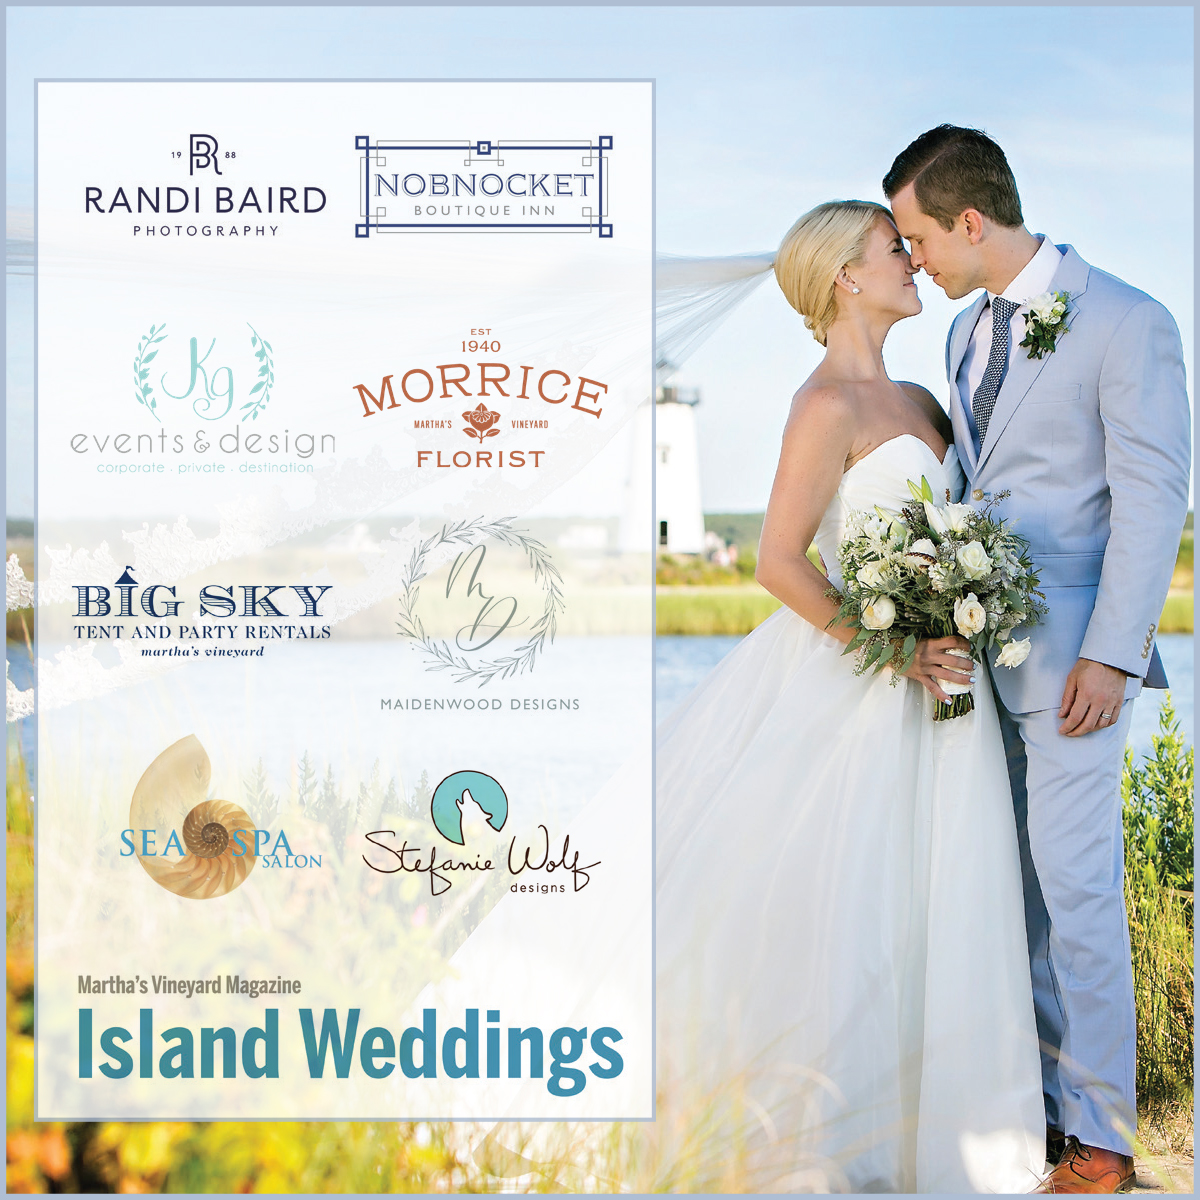 Are You Dreaming Of A Vineyard Wedding Course Enter Our Contest Today For Chance To Win An Engagement Getaway Weekend And Exclusive